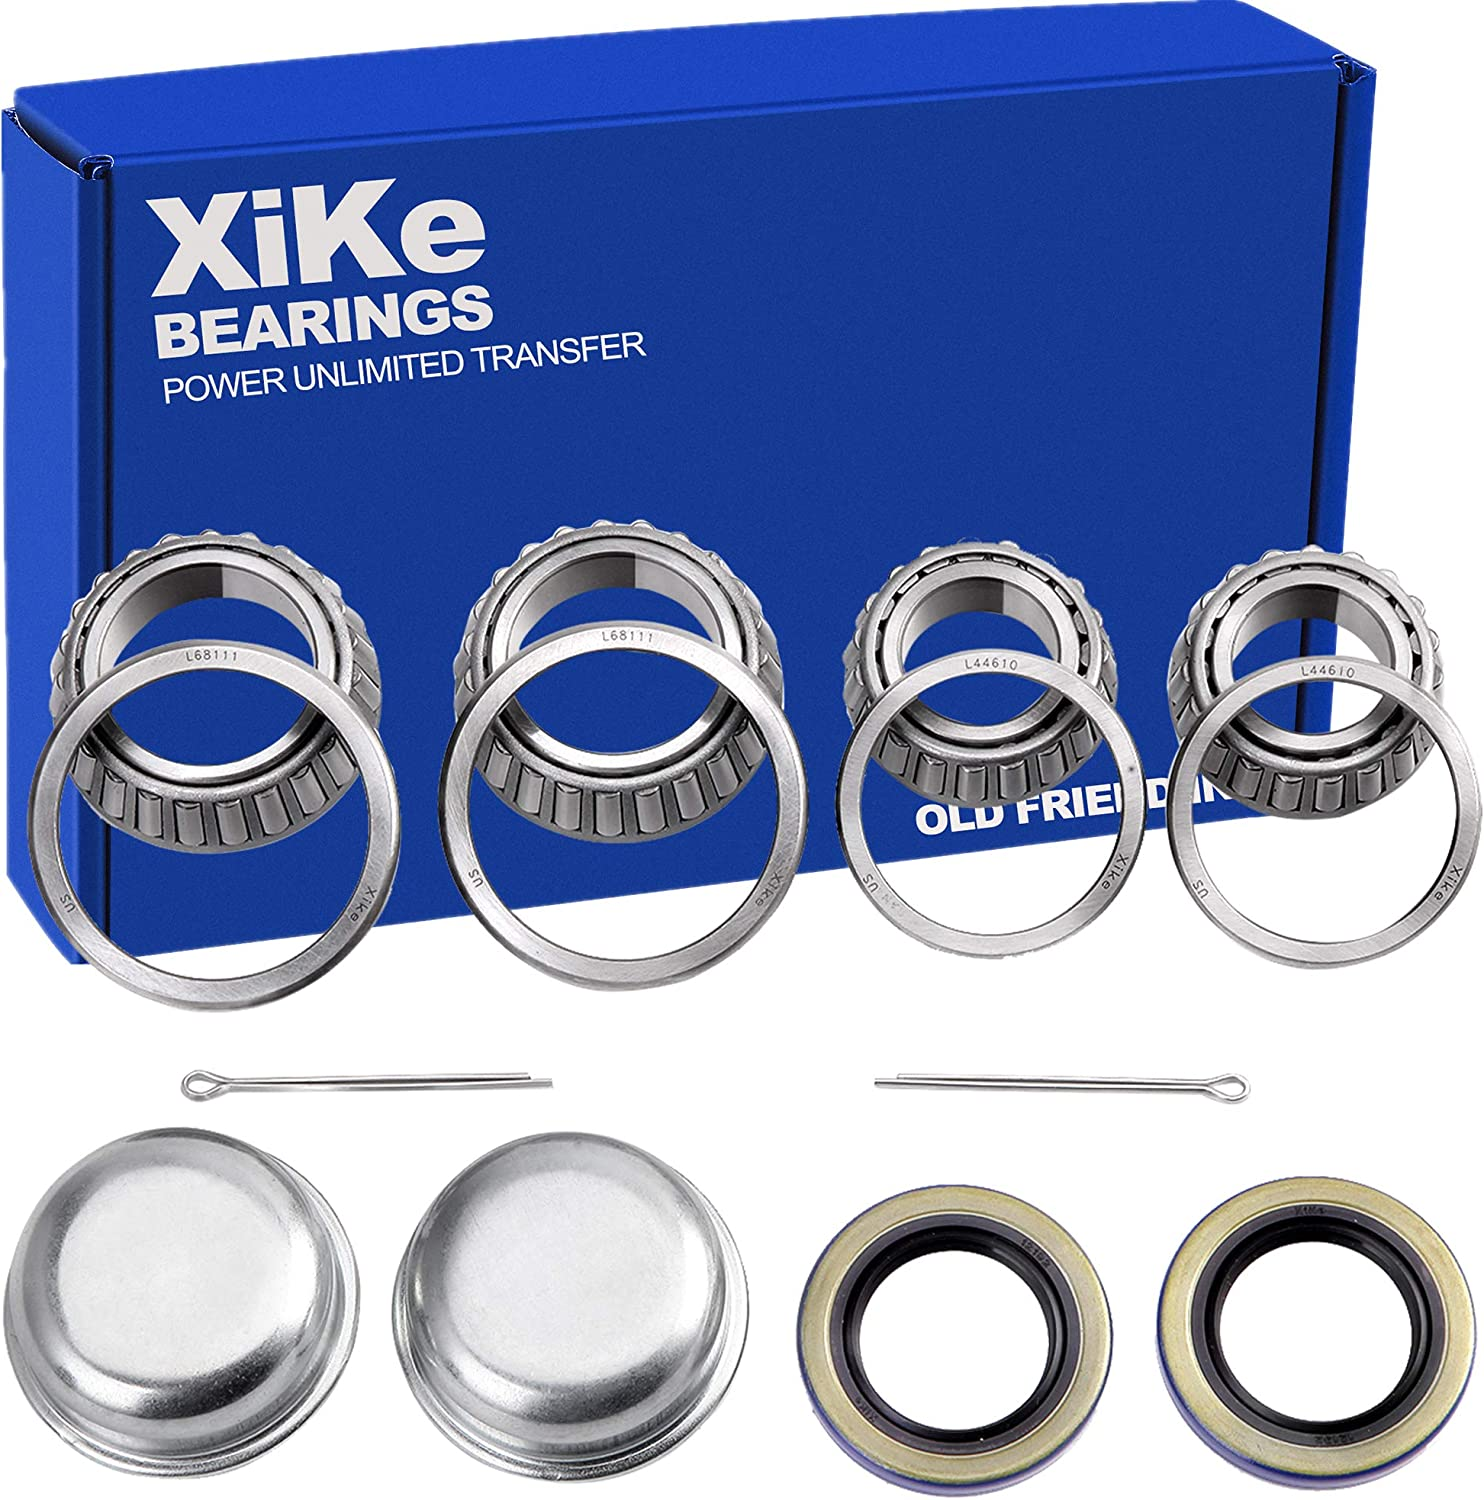 XiKe 2 Set Trailer Axle Hub Bearings Wheel Kit for Spindle 13 8'' to 11 16'' inch, redary Quiet and Durable. L68149 L68111 and L44649 L44610, 171255TB Seal OD 1.719'', Dust Cover and Cotter Pin.